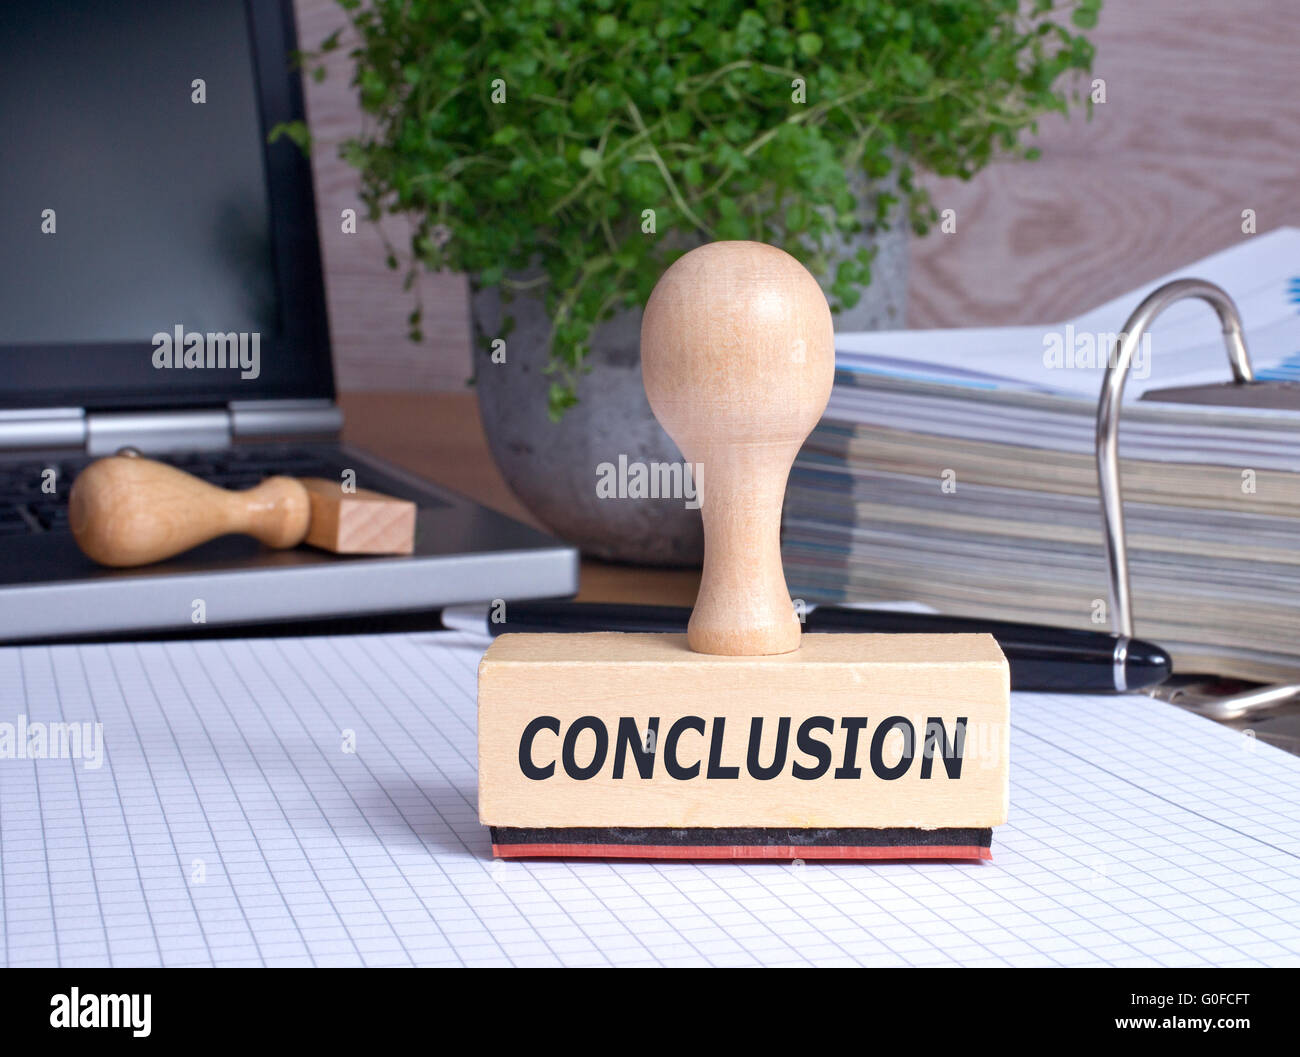 Conclusion rubber stamp in the office - Stock Photo